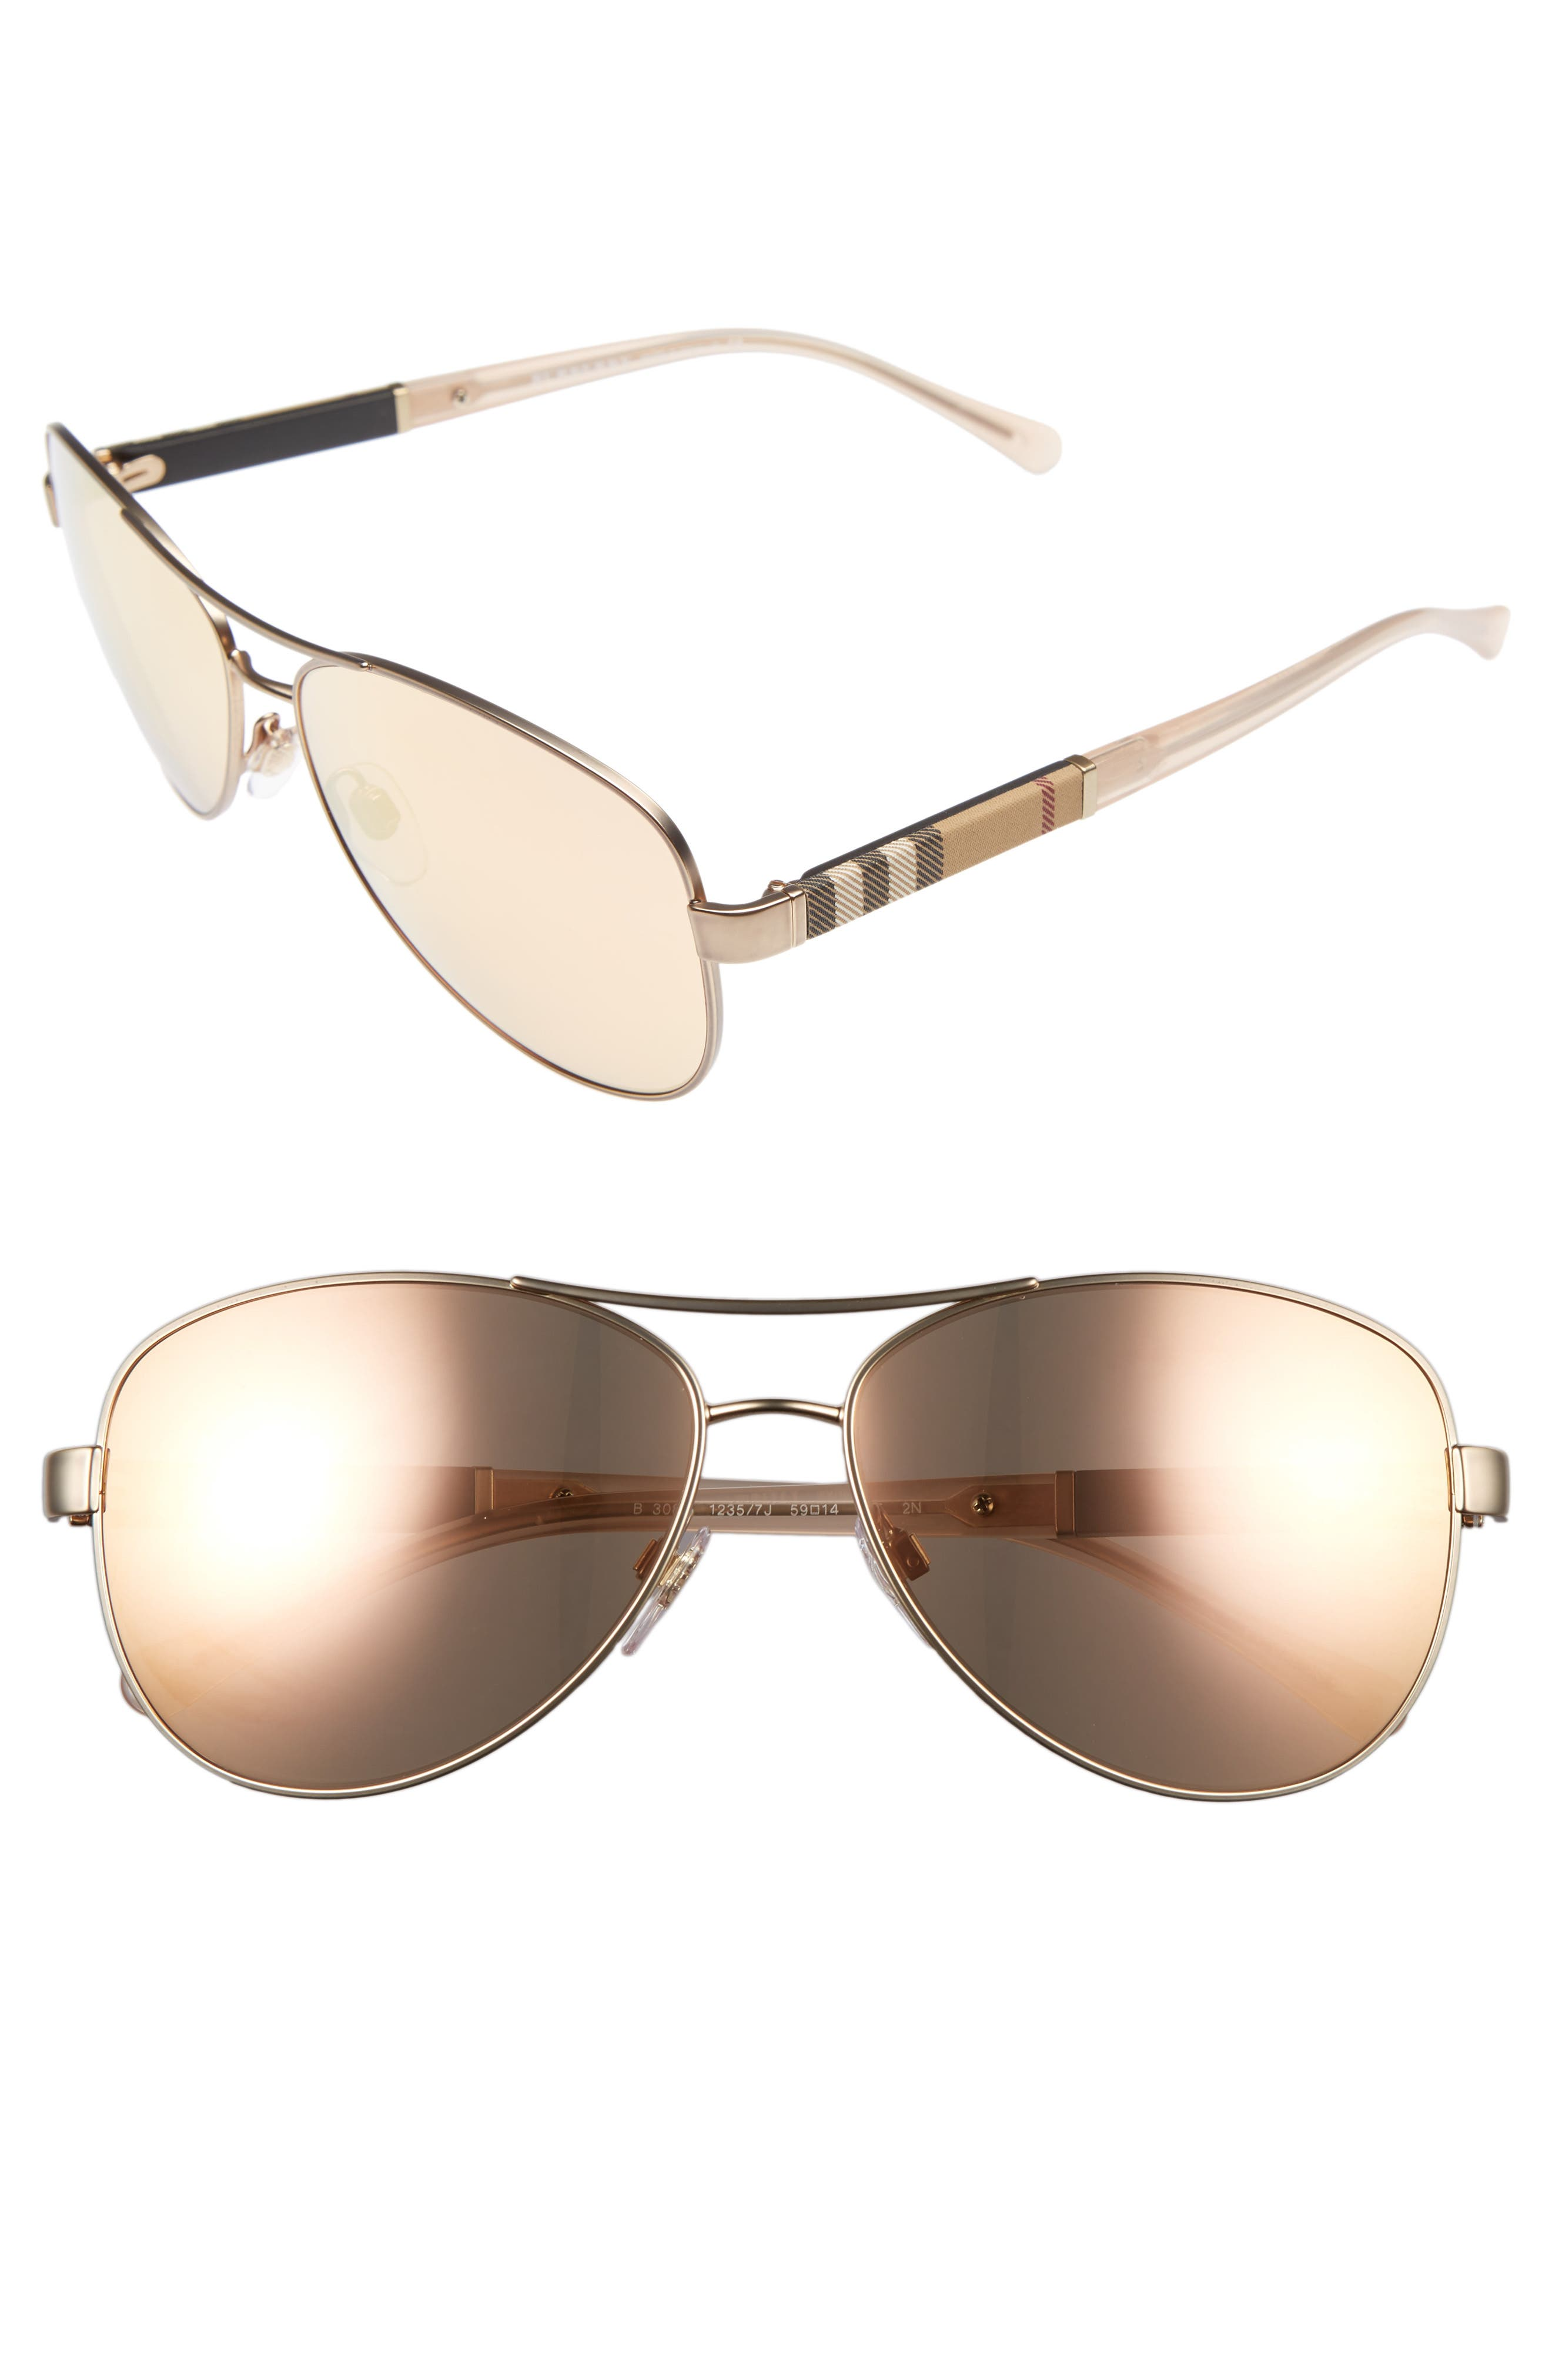 Burberry 59mm Mirrored Aviator Sunglasses